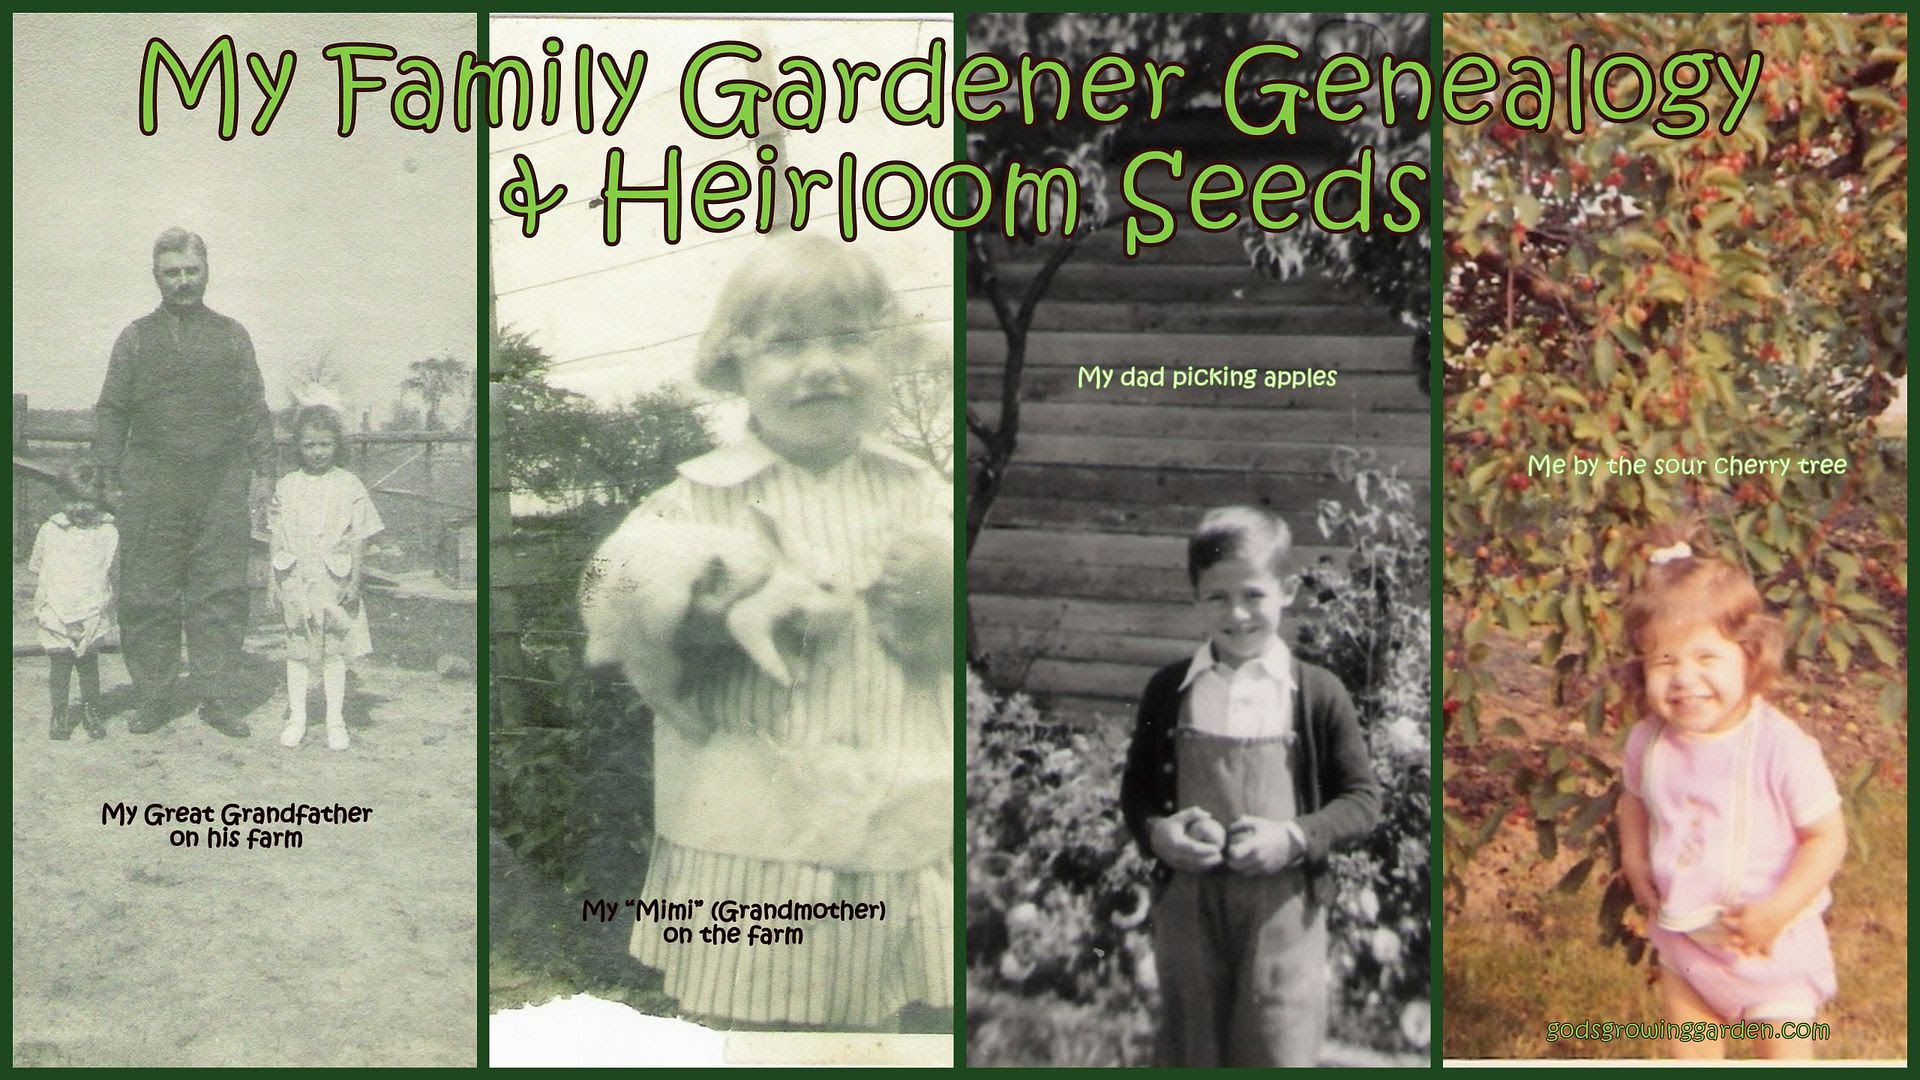 Gardener Genealogy by Angie OuelletteTower for godsgrowinggarden.com photo OldPhotosMe_zps6e392fc0.jpg